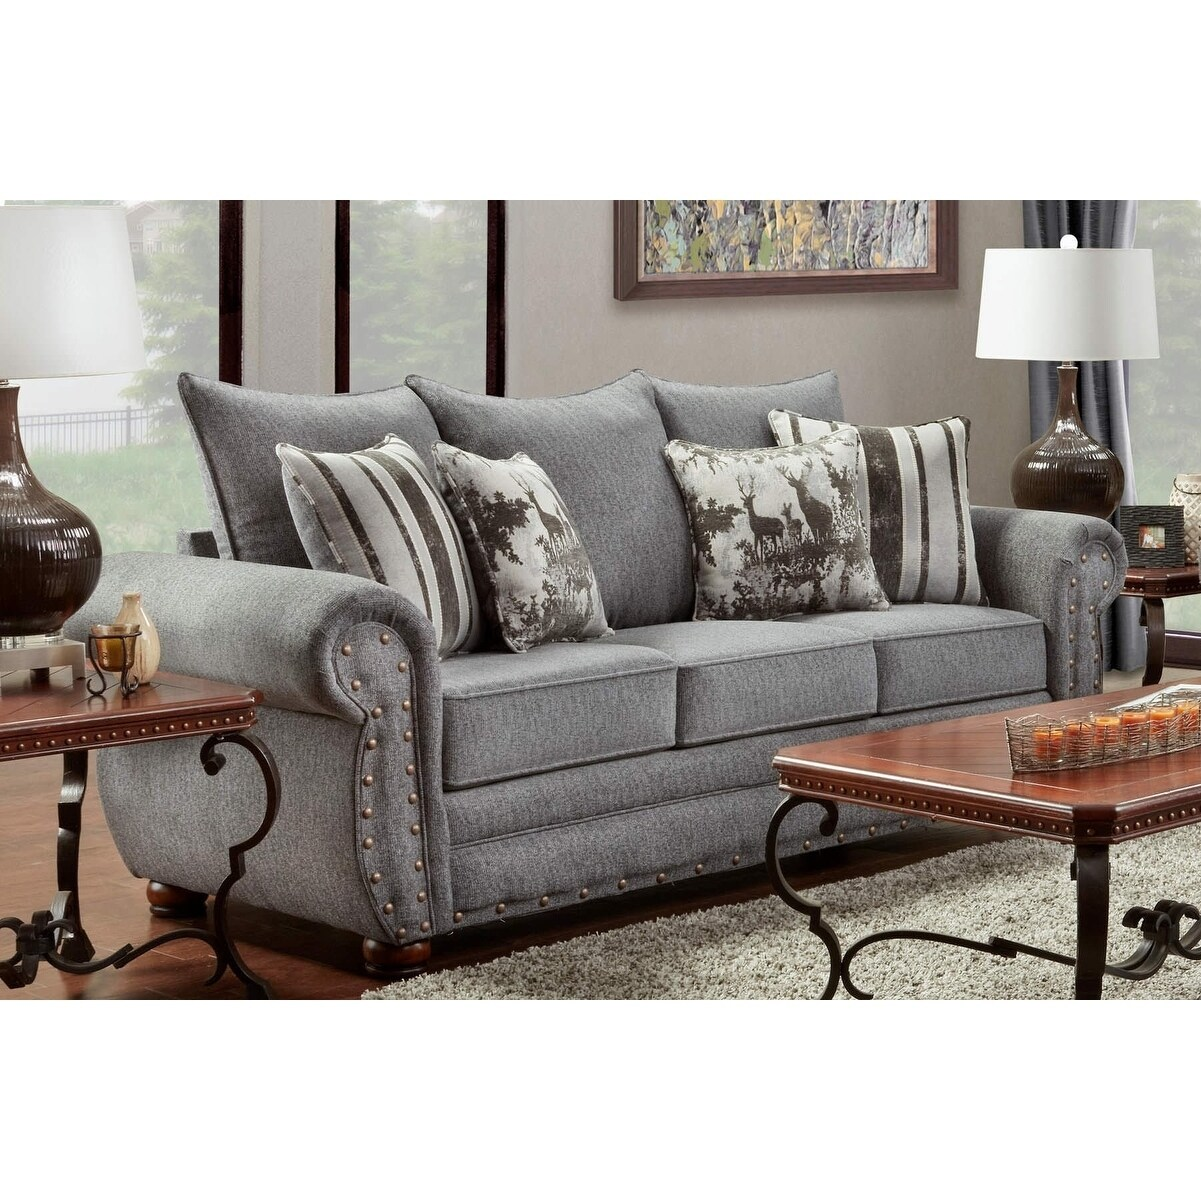 American Sofa Images American Furniture Classics Model B3103 Erss Elk River Storm Sofa